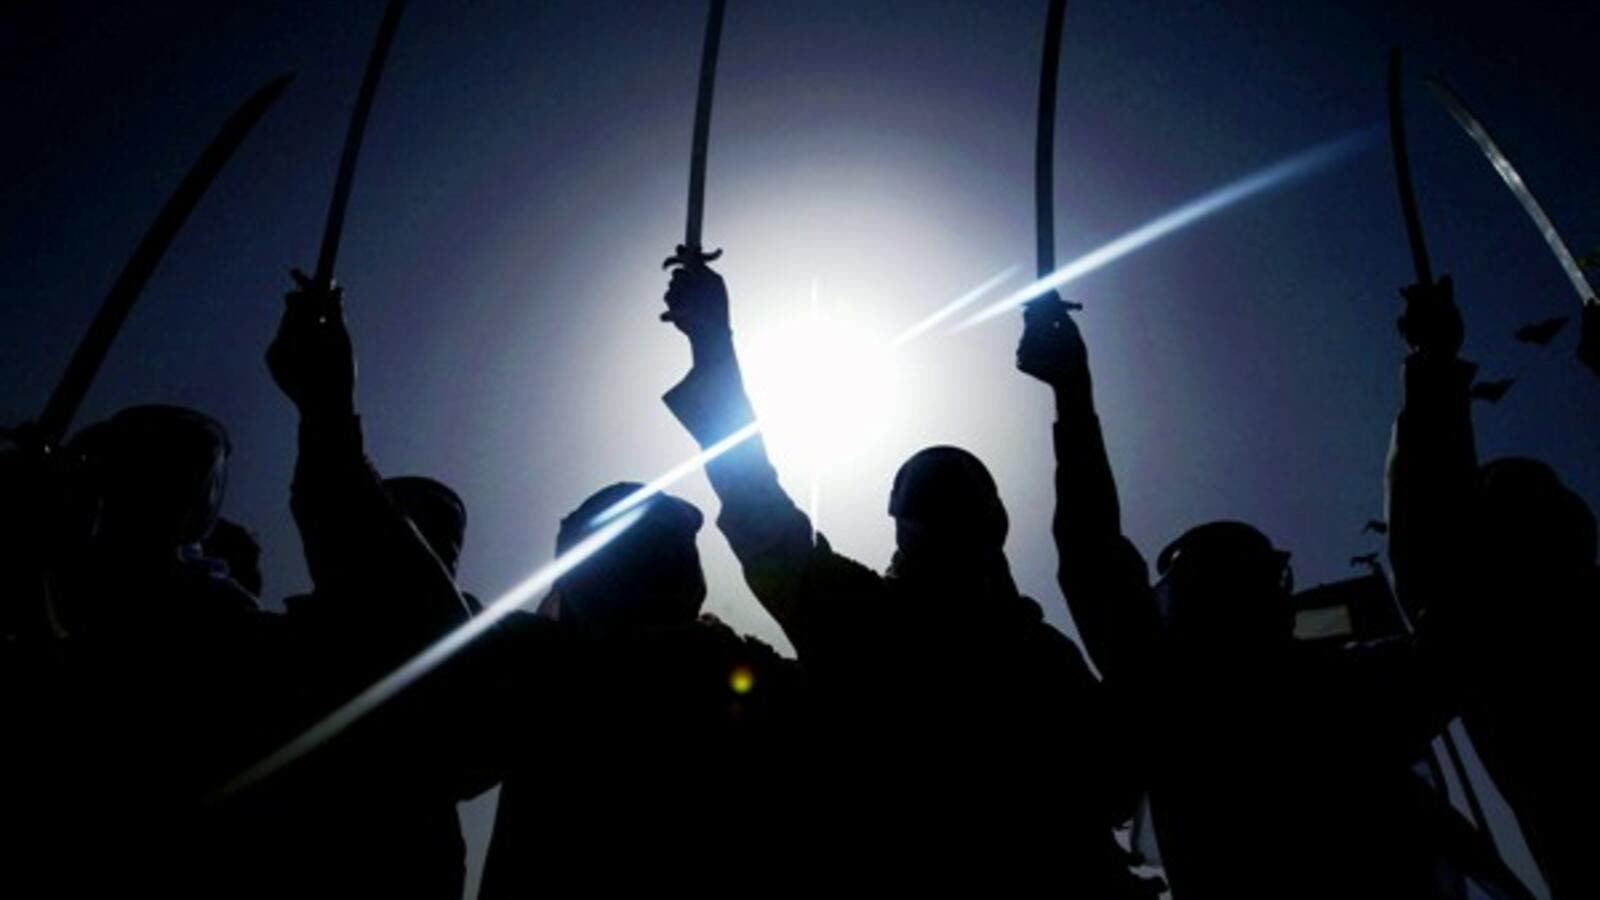 Activists are crying out to end beheading executions in Saudi Arabia.